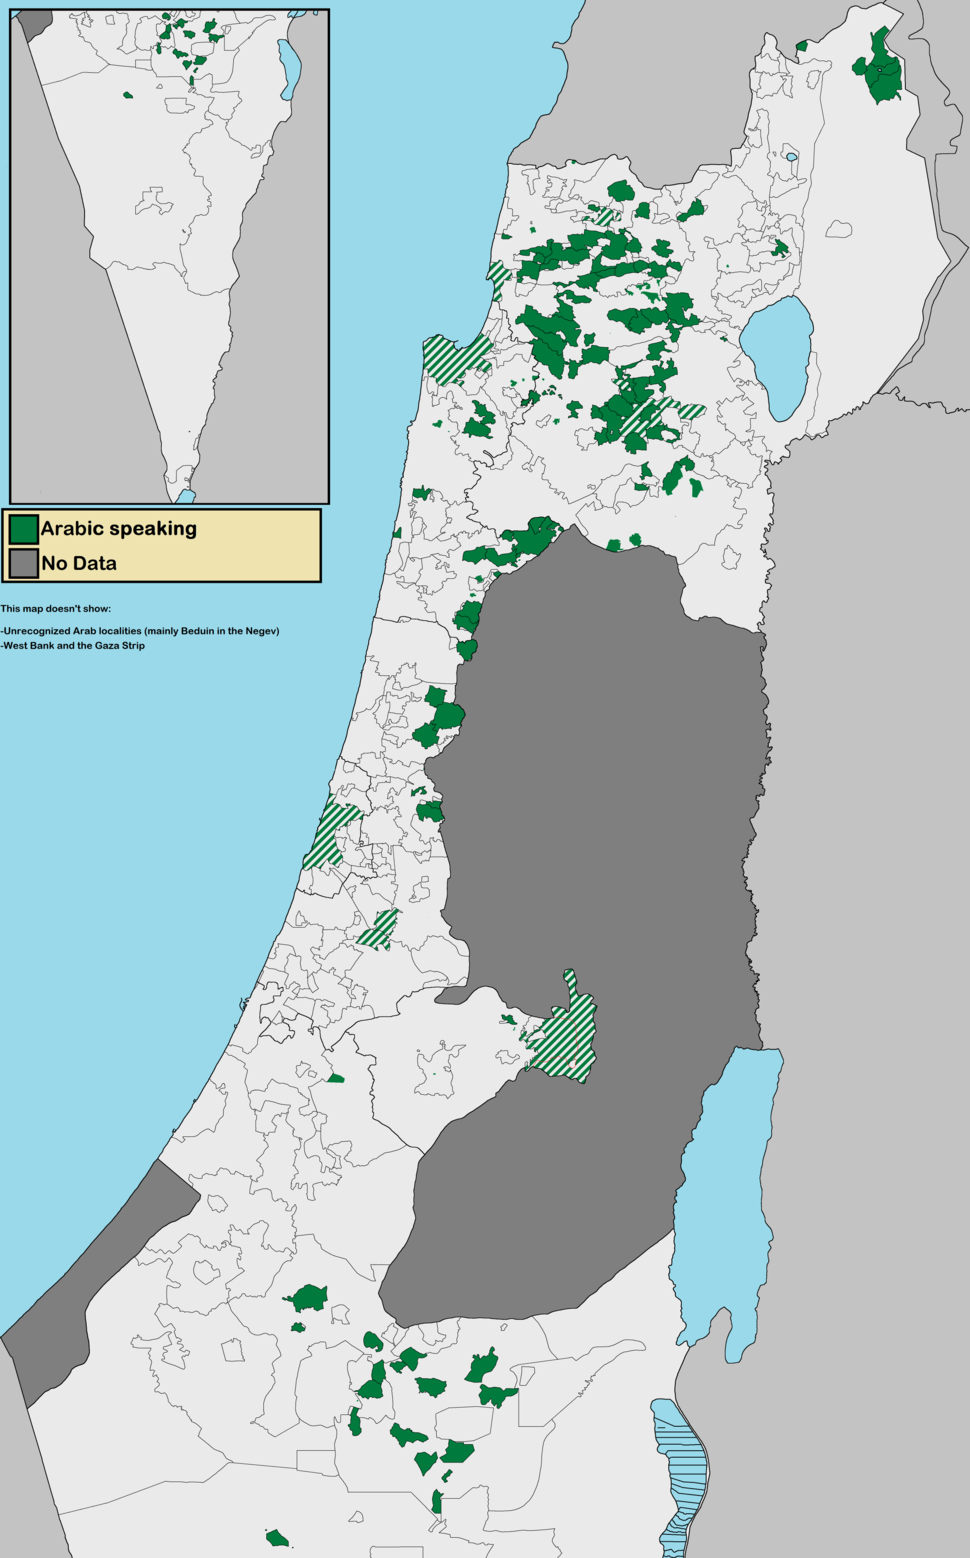 Map of Arabic speaking localities in Israel